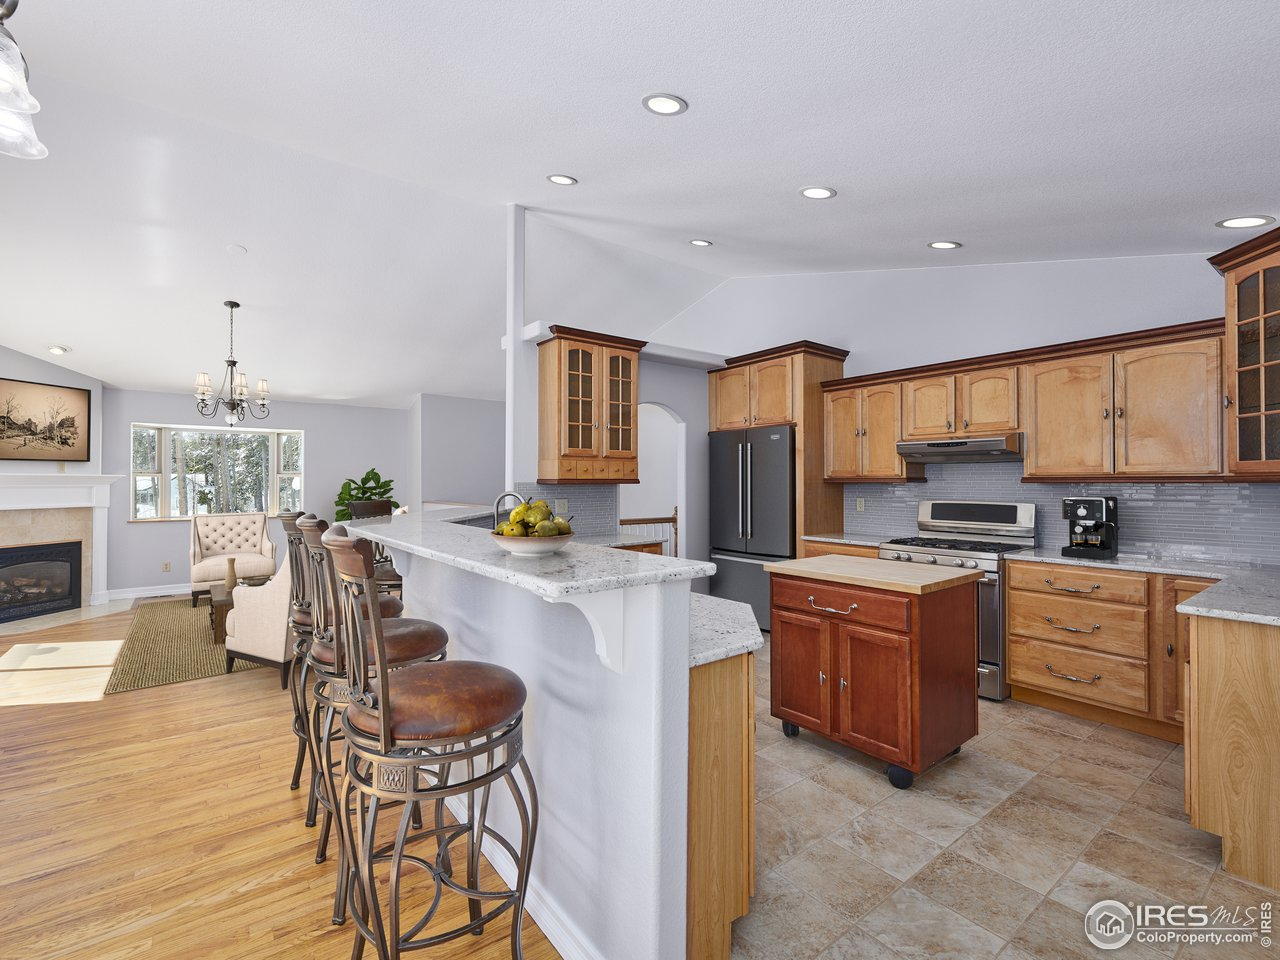 Updated kitchen and hardwood floors throughout